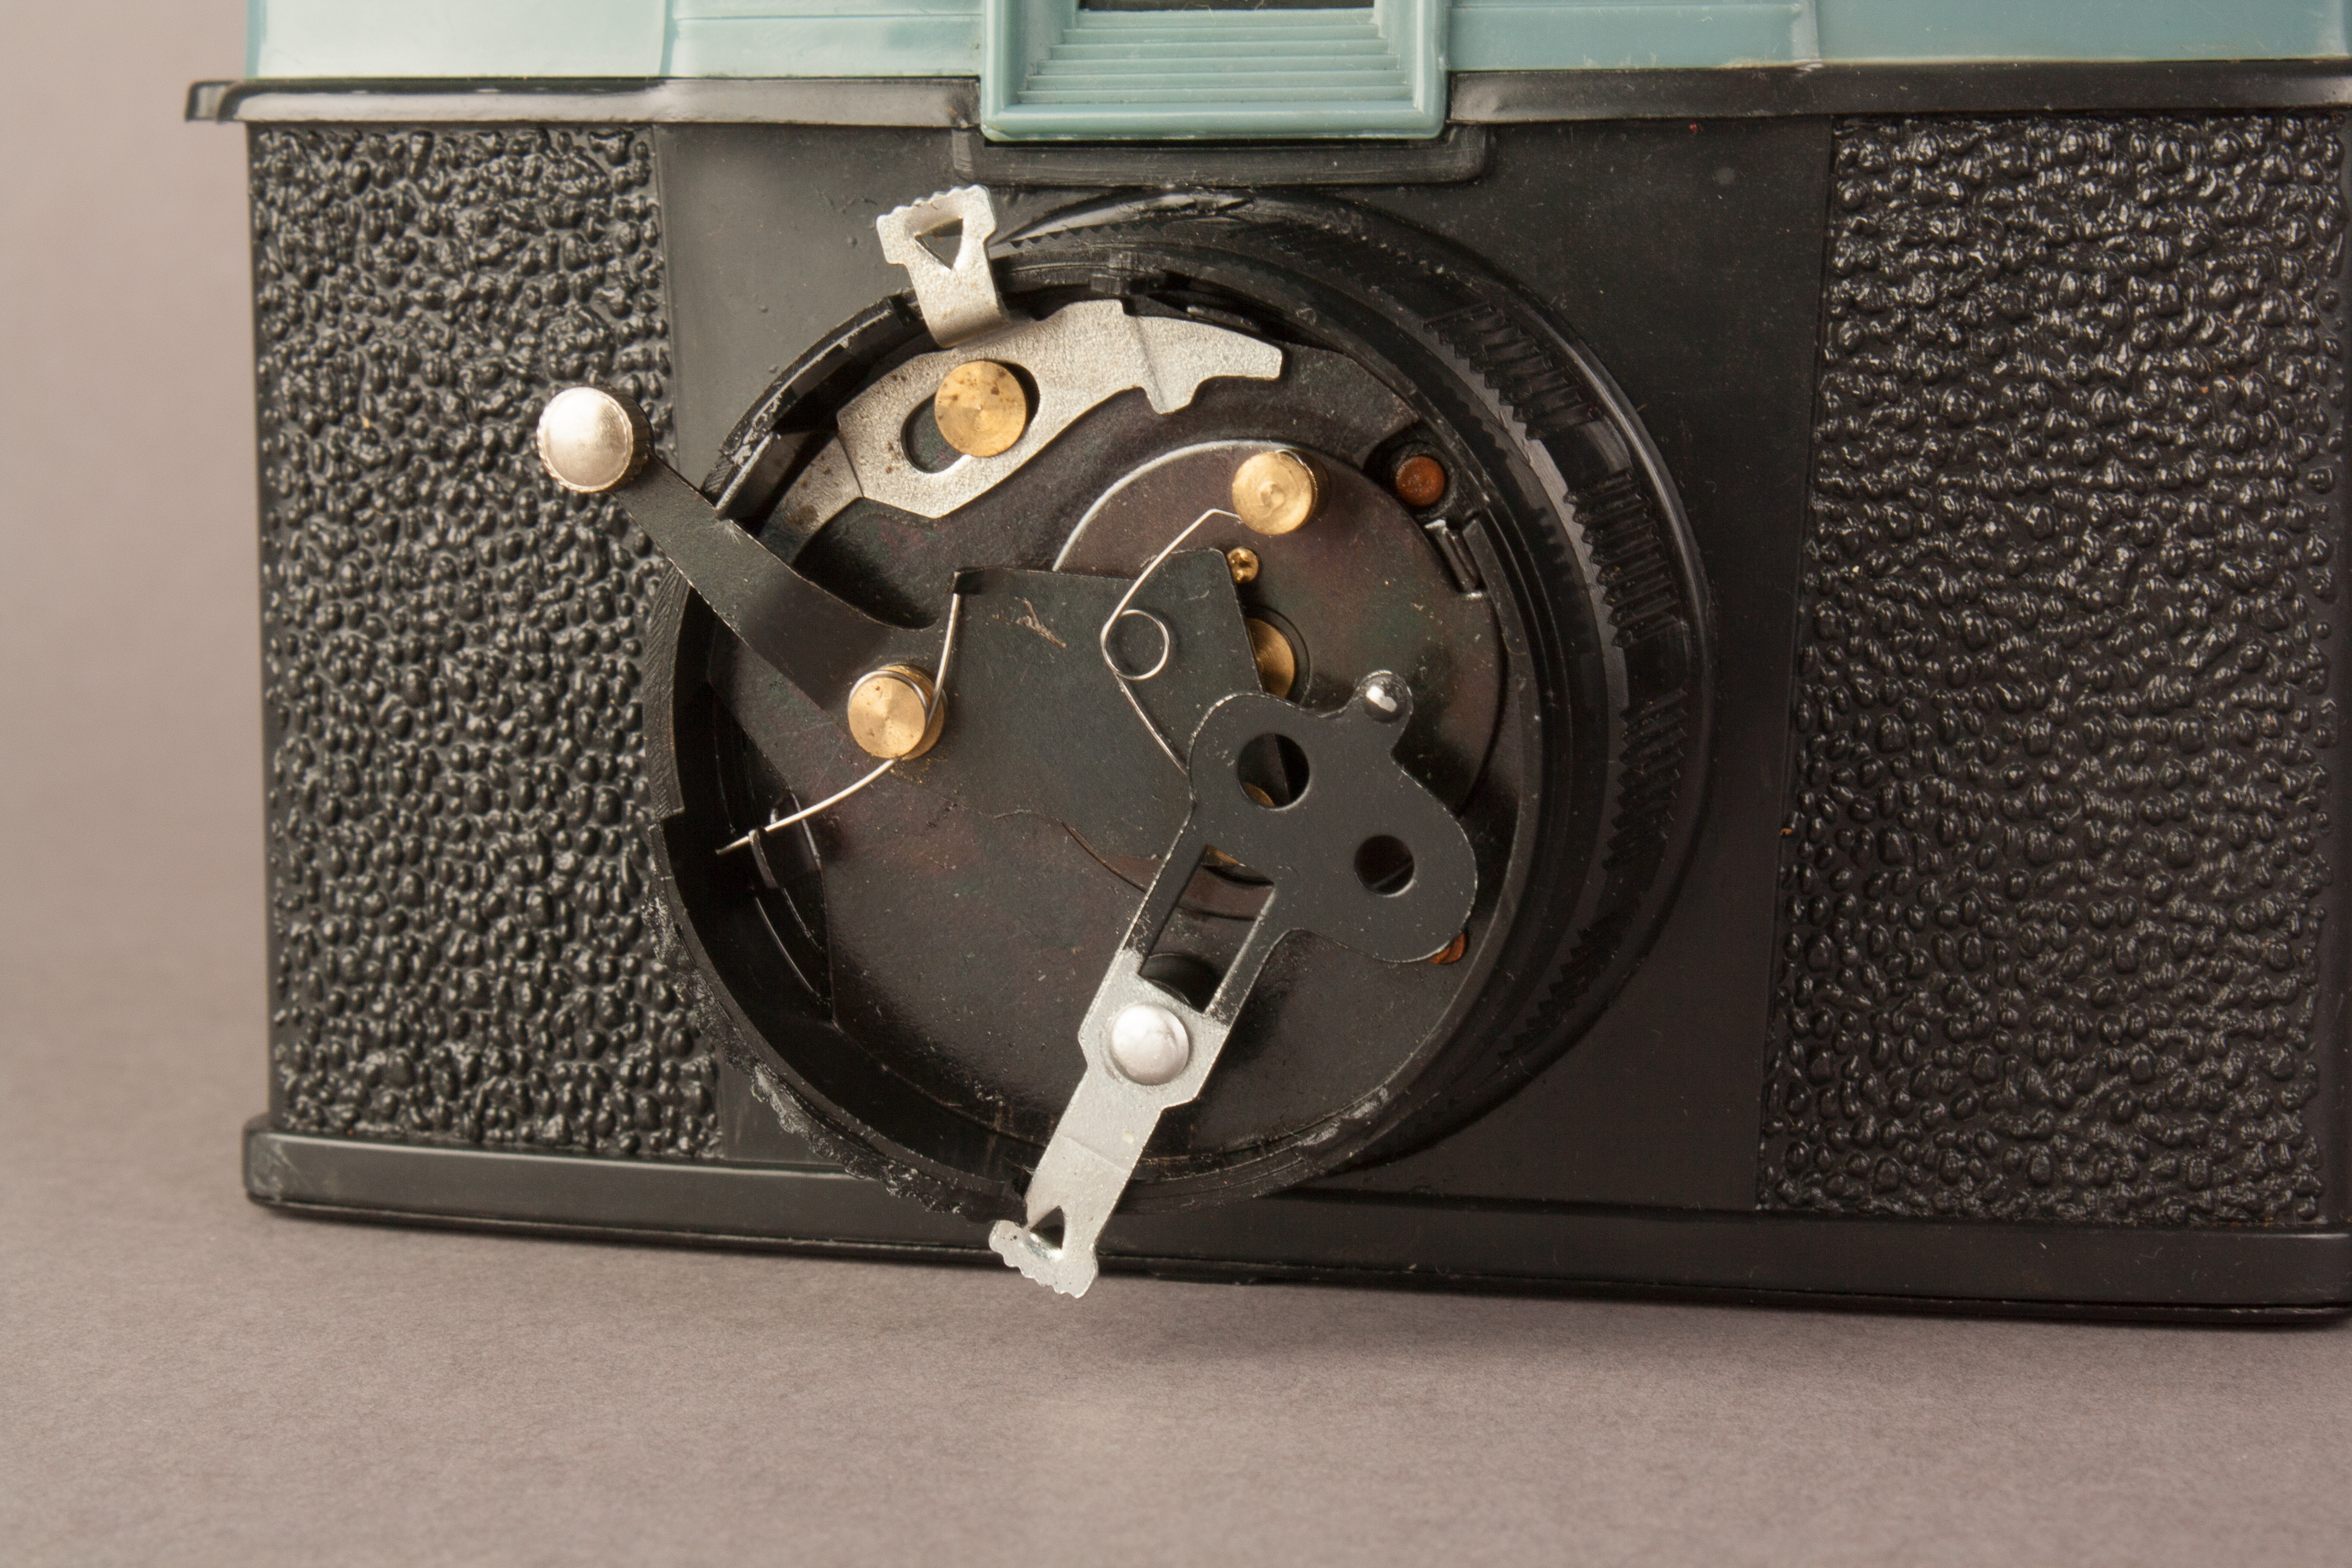 A picture showing the Diana F shutter mechanism